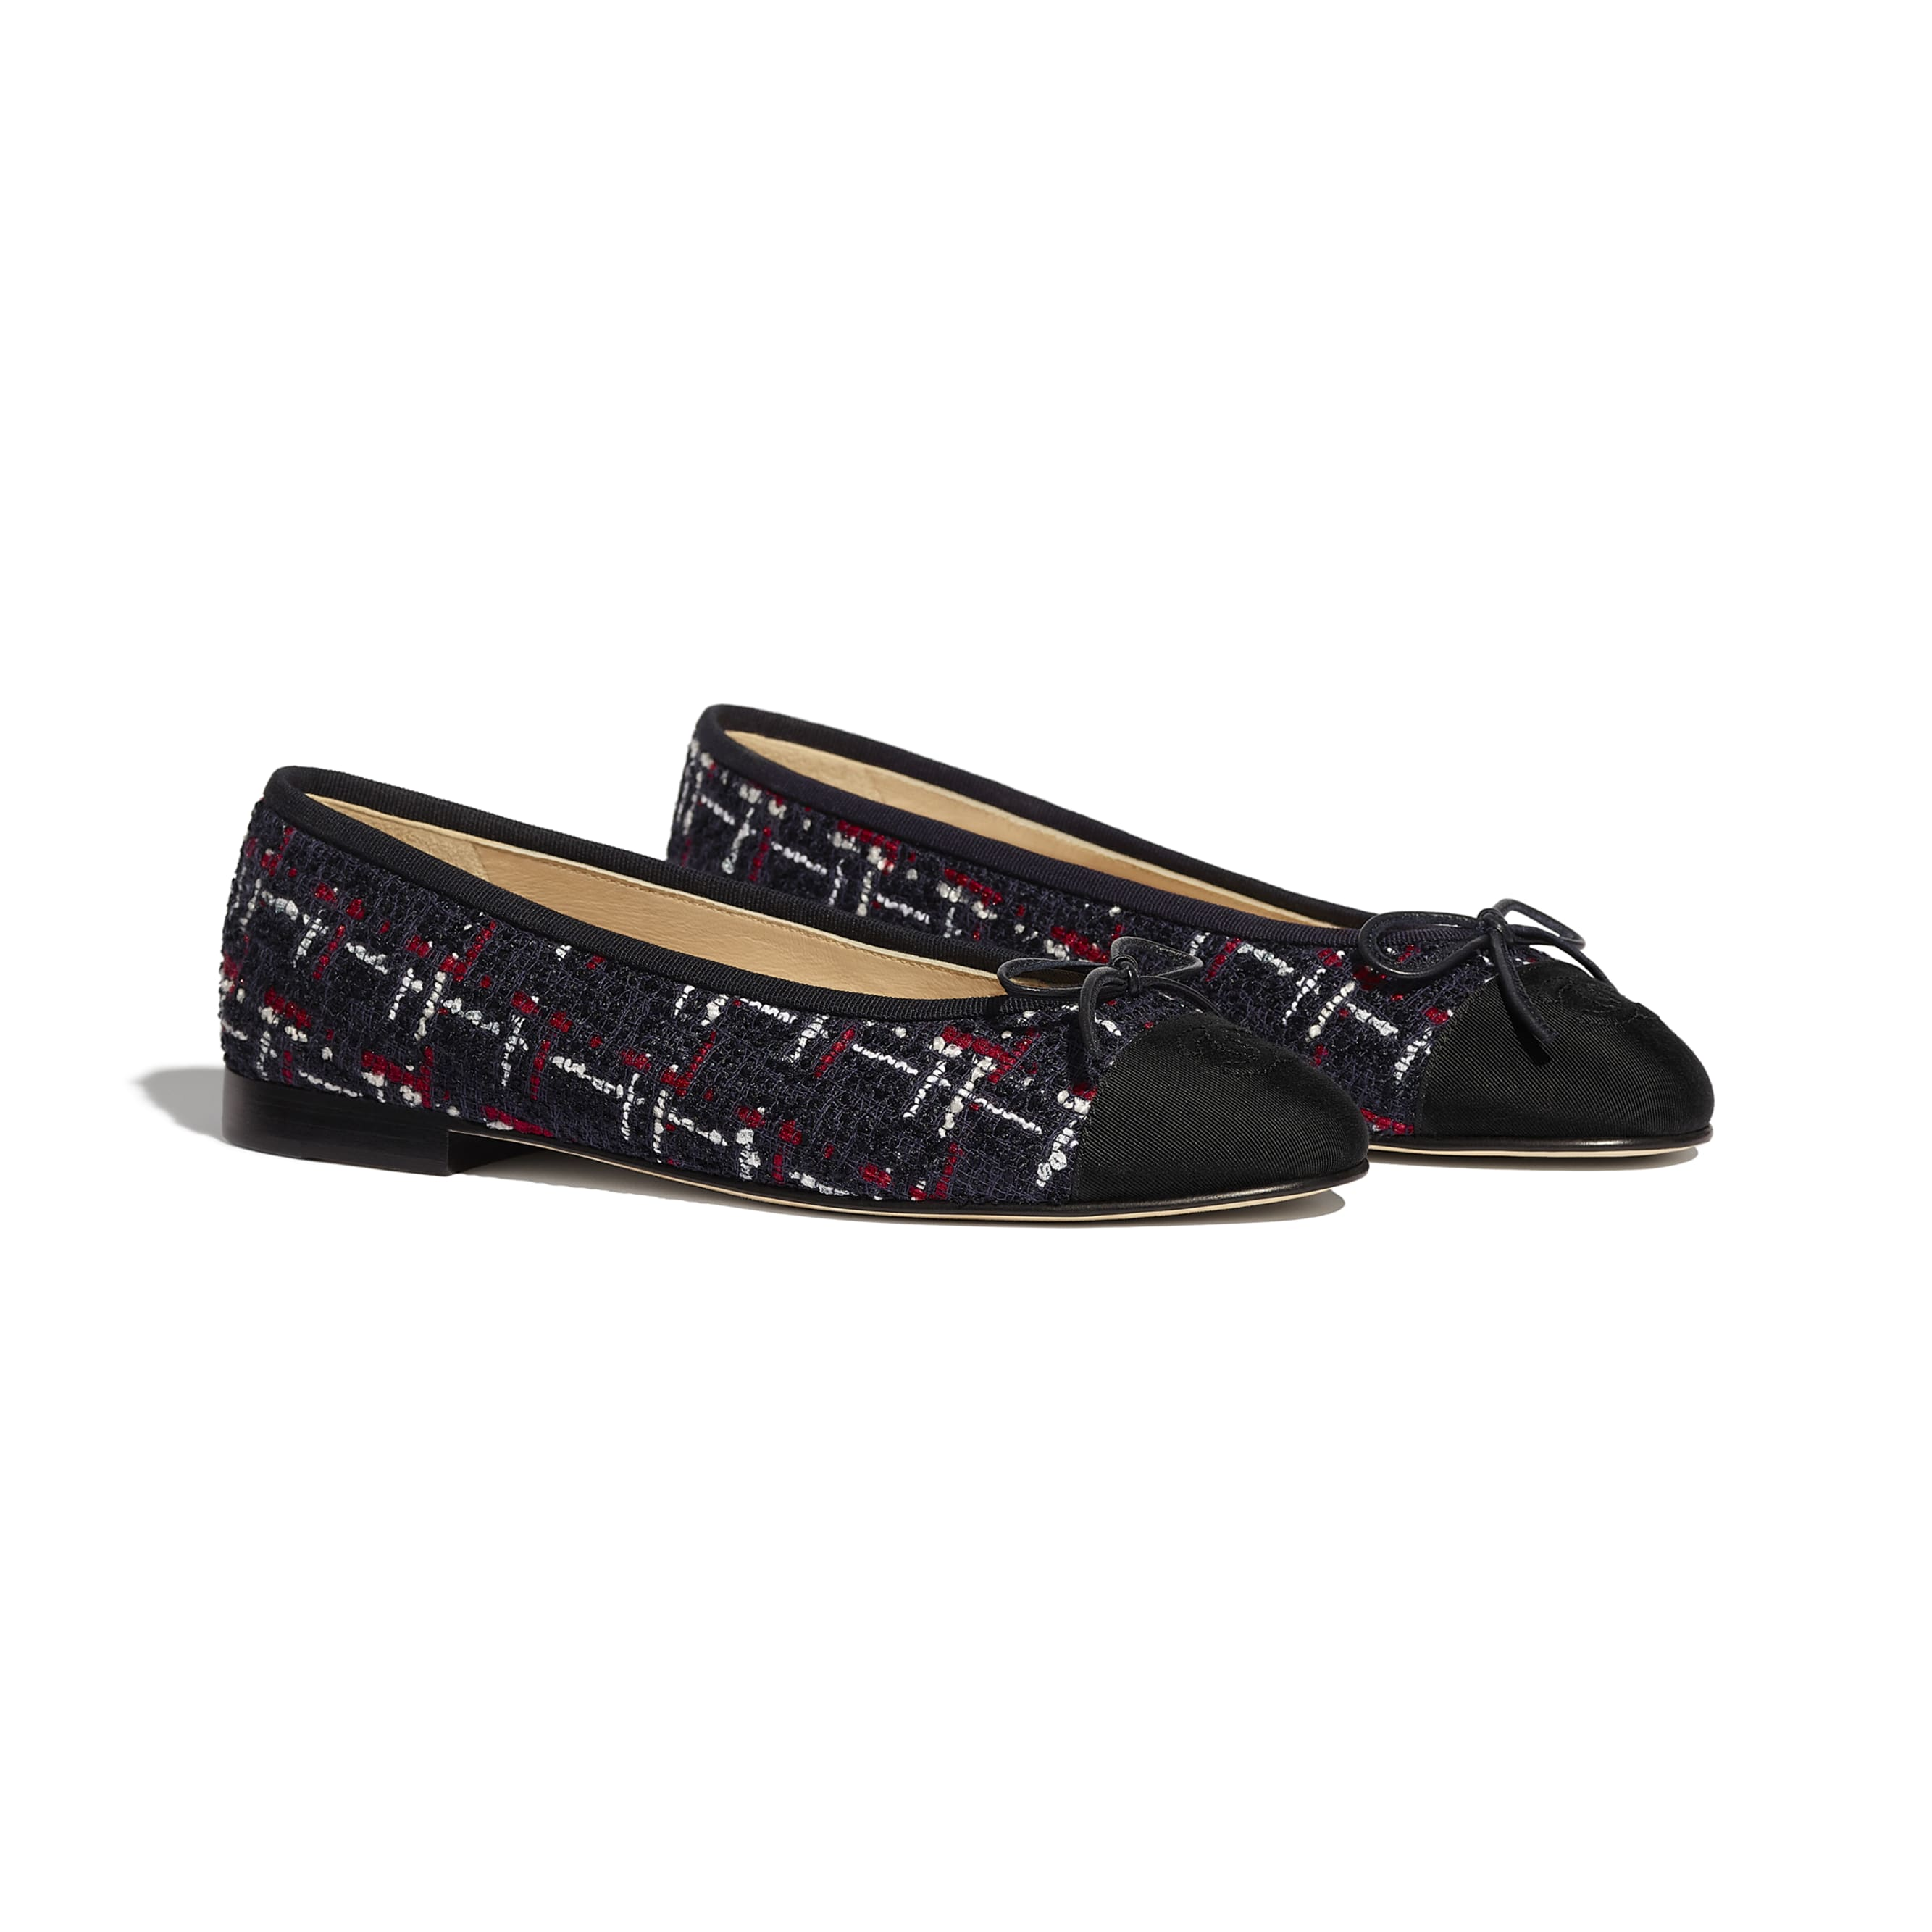 Flats - Navy Blue, Red, White & Black - Tweed & Grosgrain - Alternative view - see standard sized version